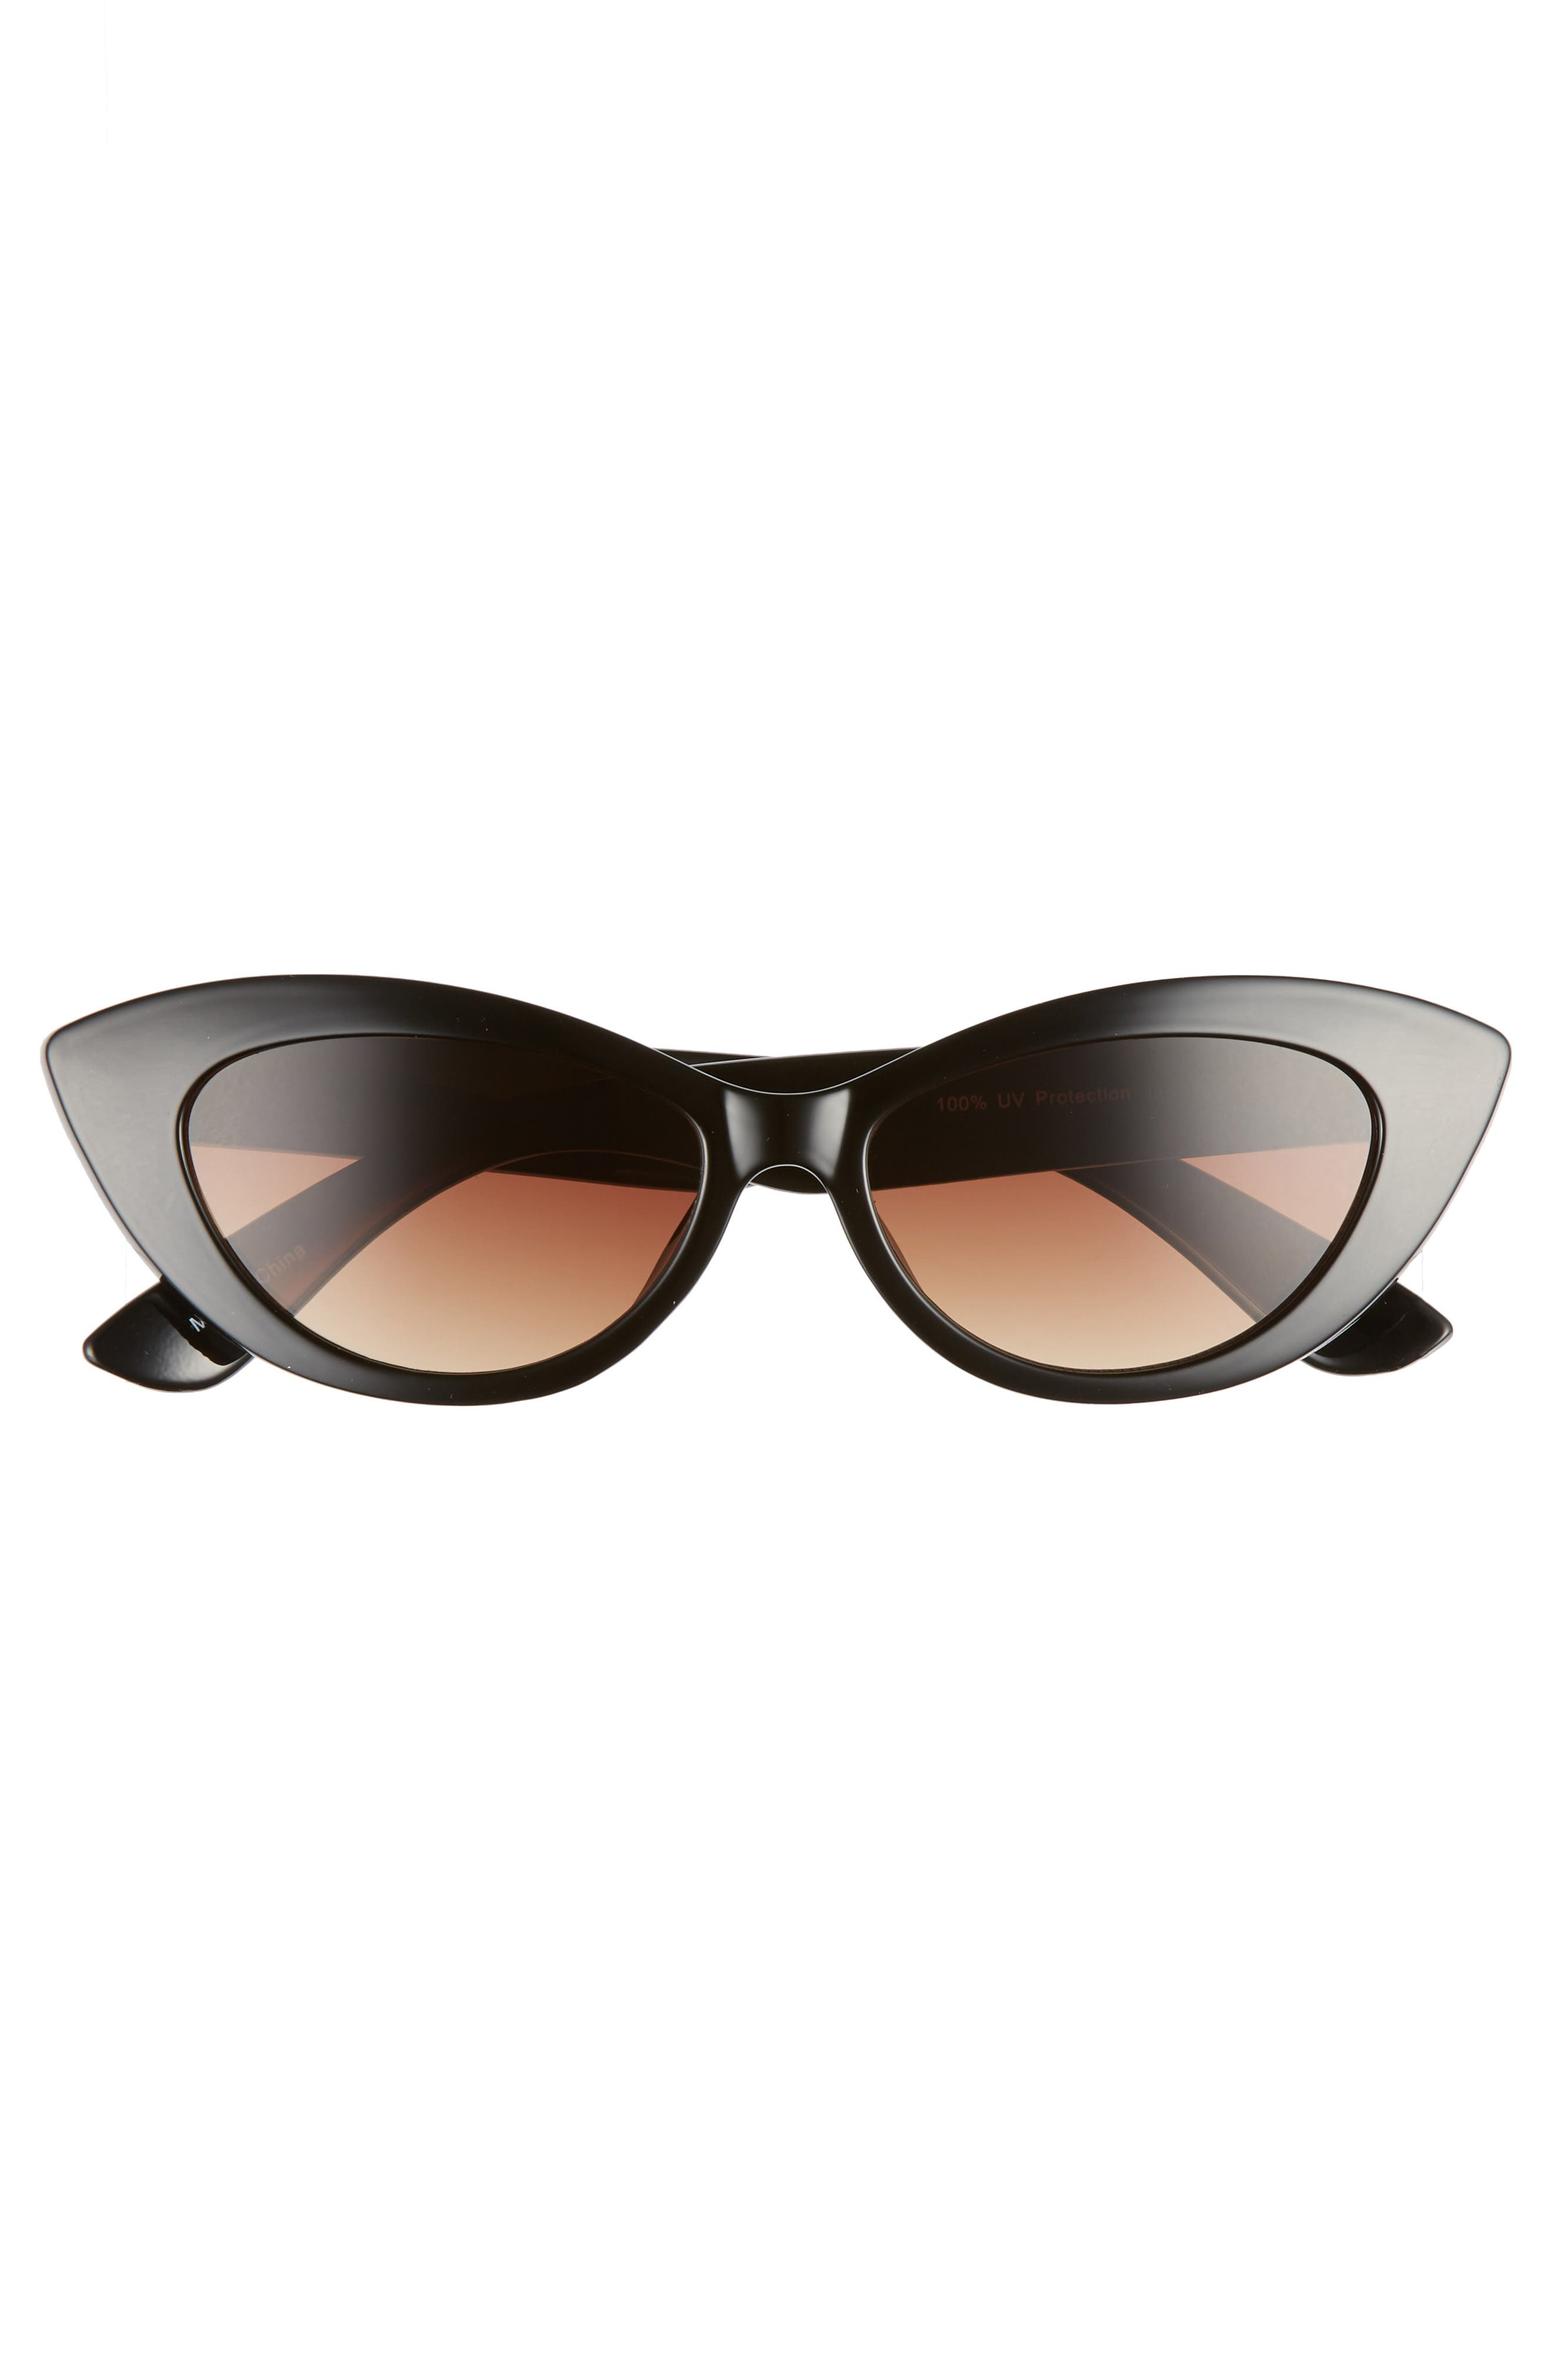 51mm Cat Eye Sunglasses,                             Alternate thumbnail 3, color,                             001